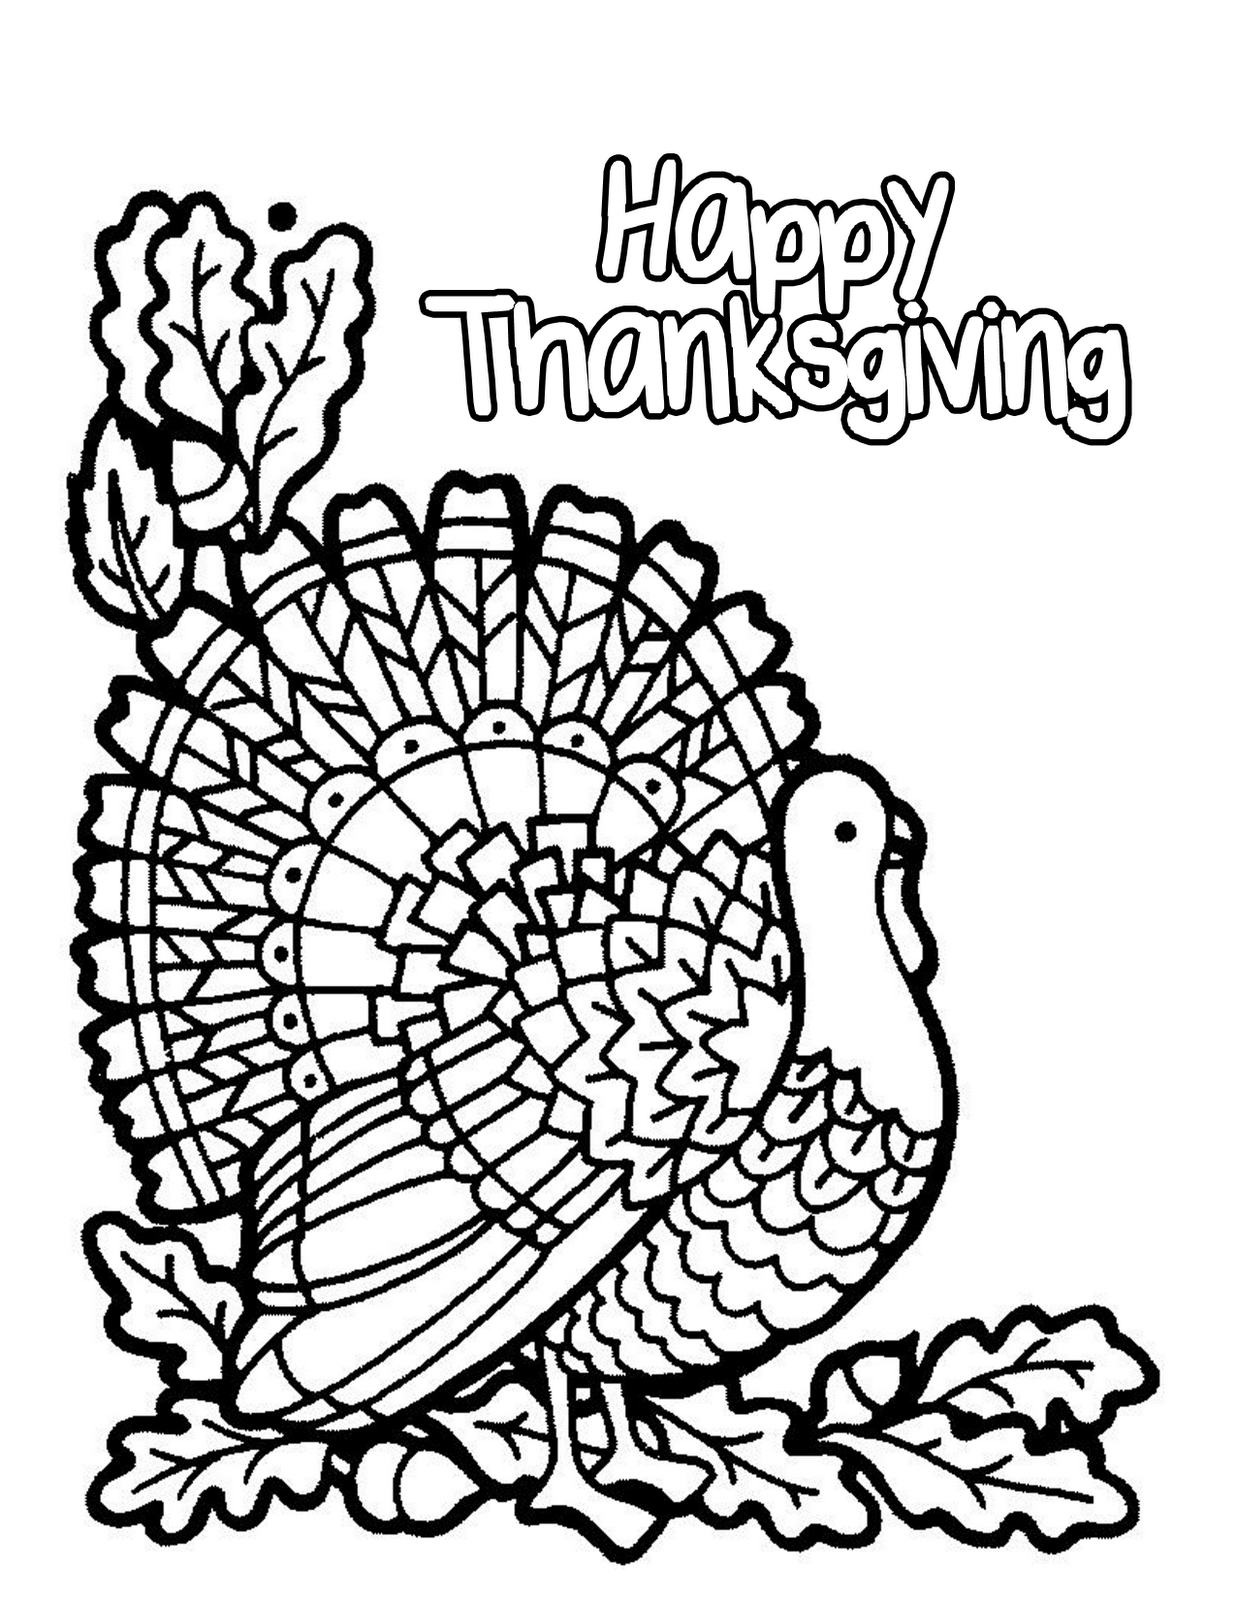 Thanksgiving coloring pages for adults coloring home for Thanksgiving coloring pages printable free